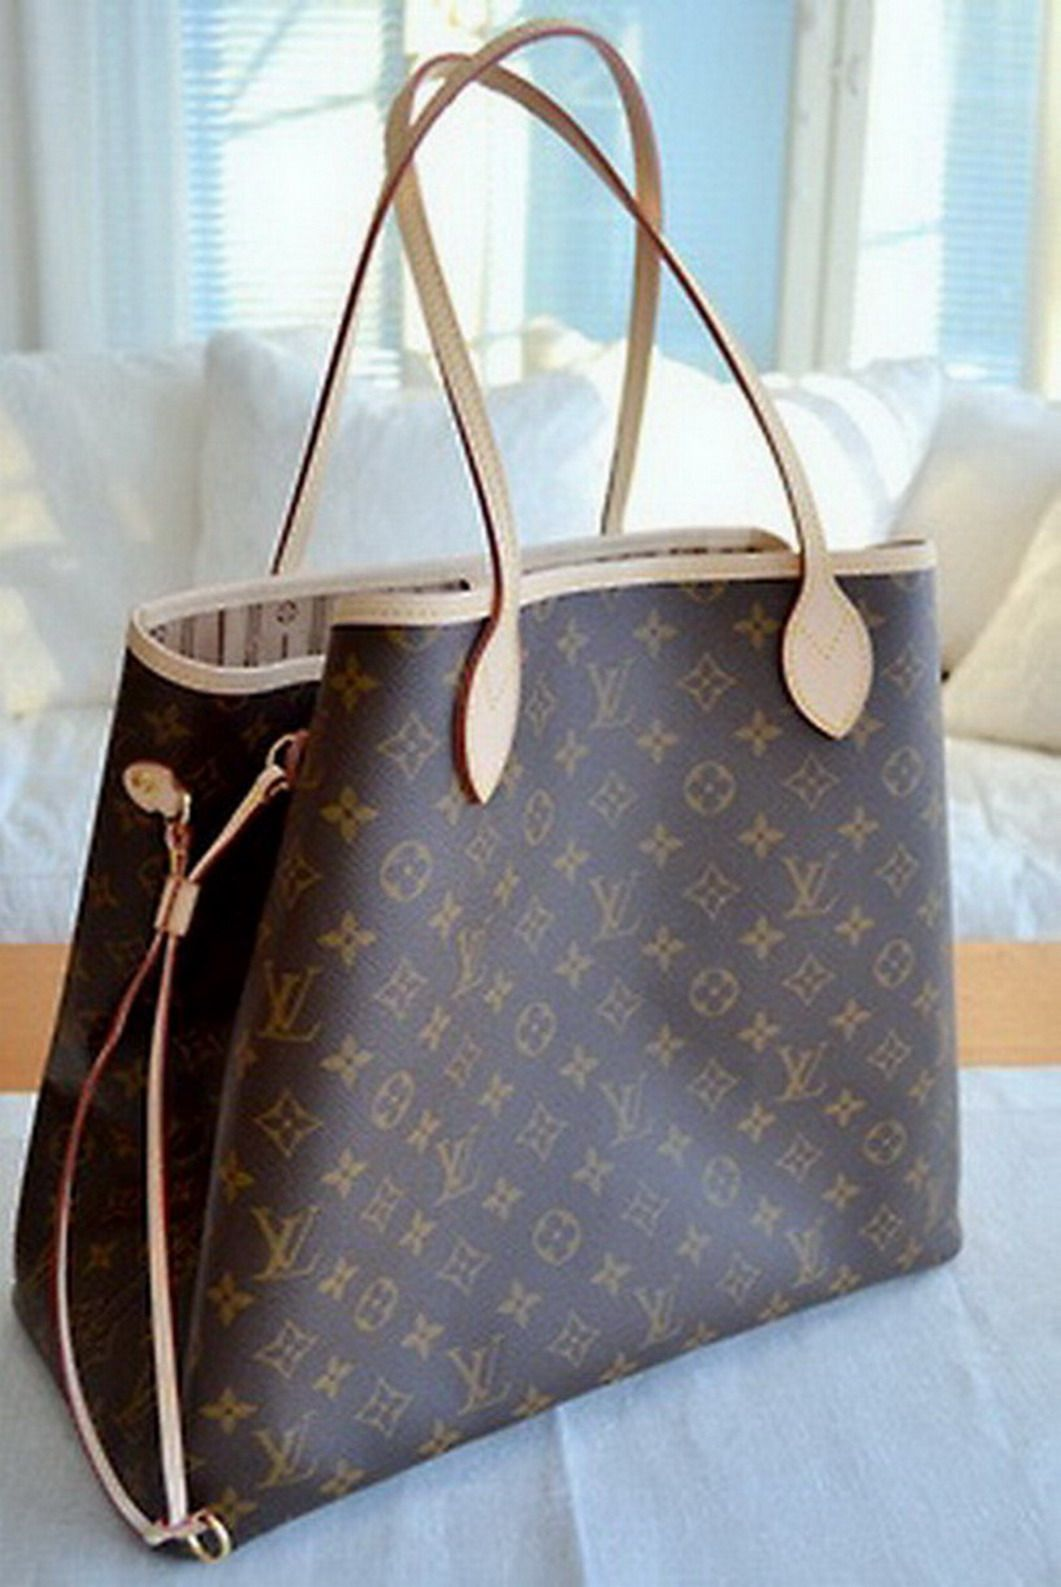 Louis Vuitton Handbags. knock offs  mass produced copies of original  designs in less expensive fabrics. 6d71f8c8b2dcb